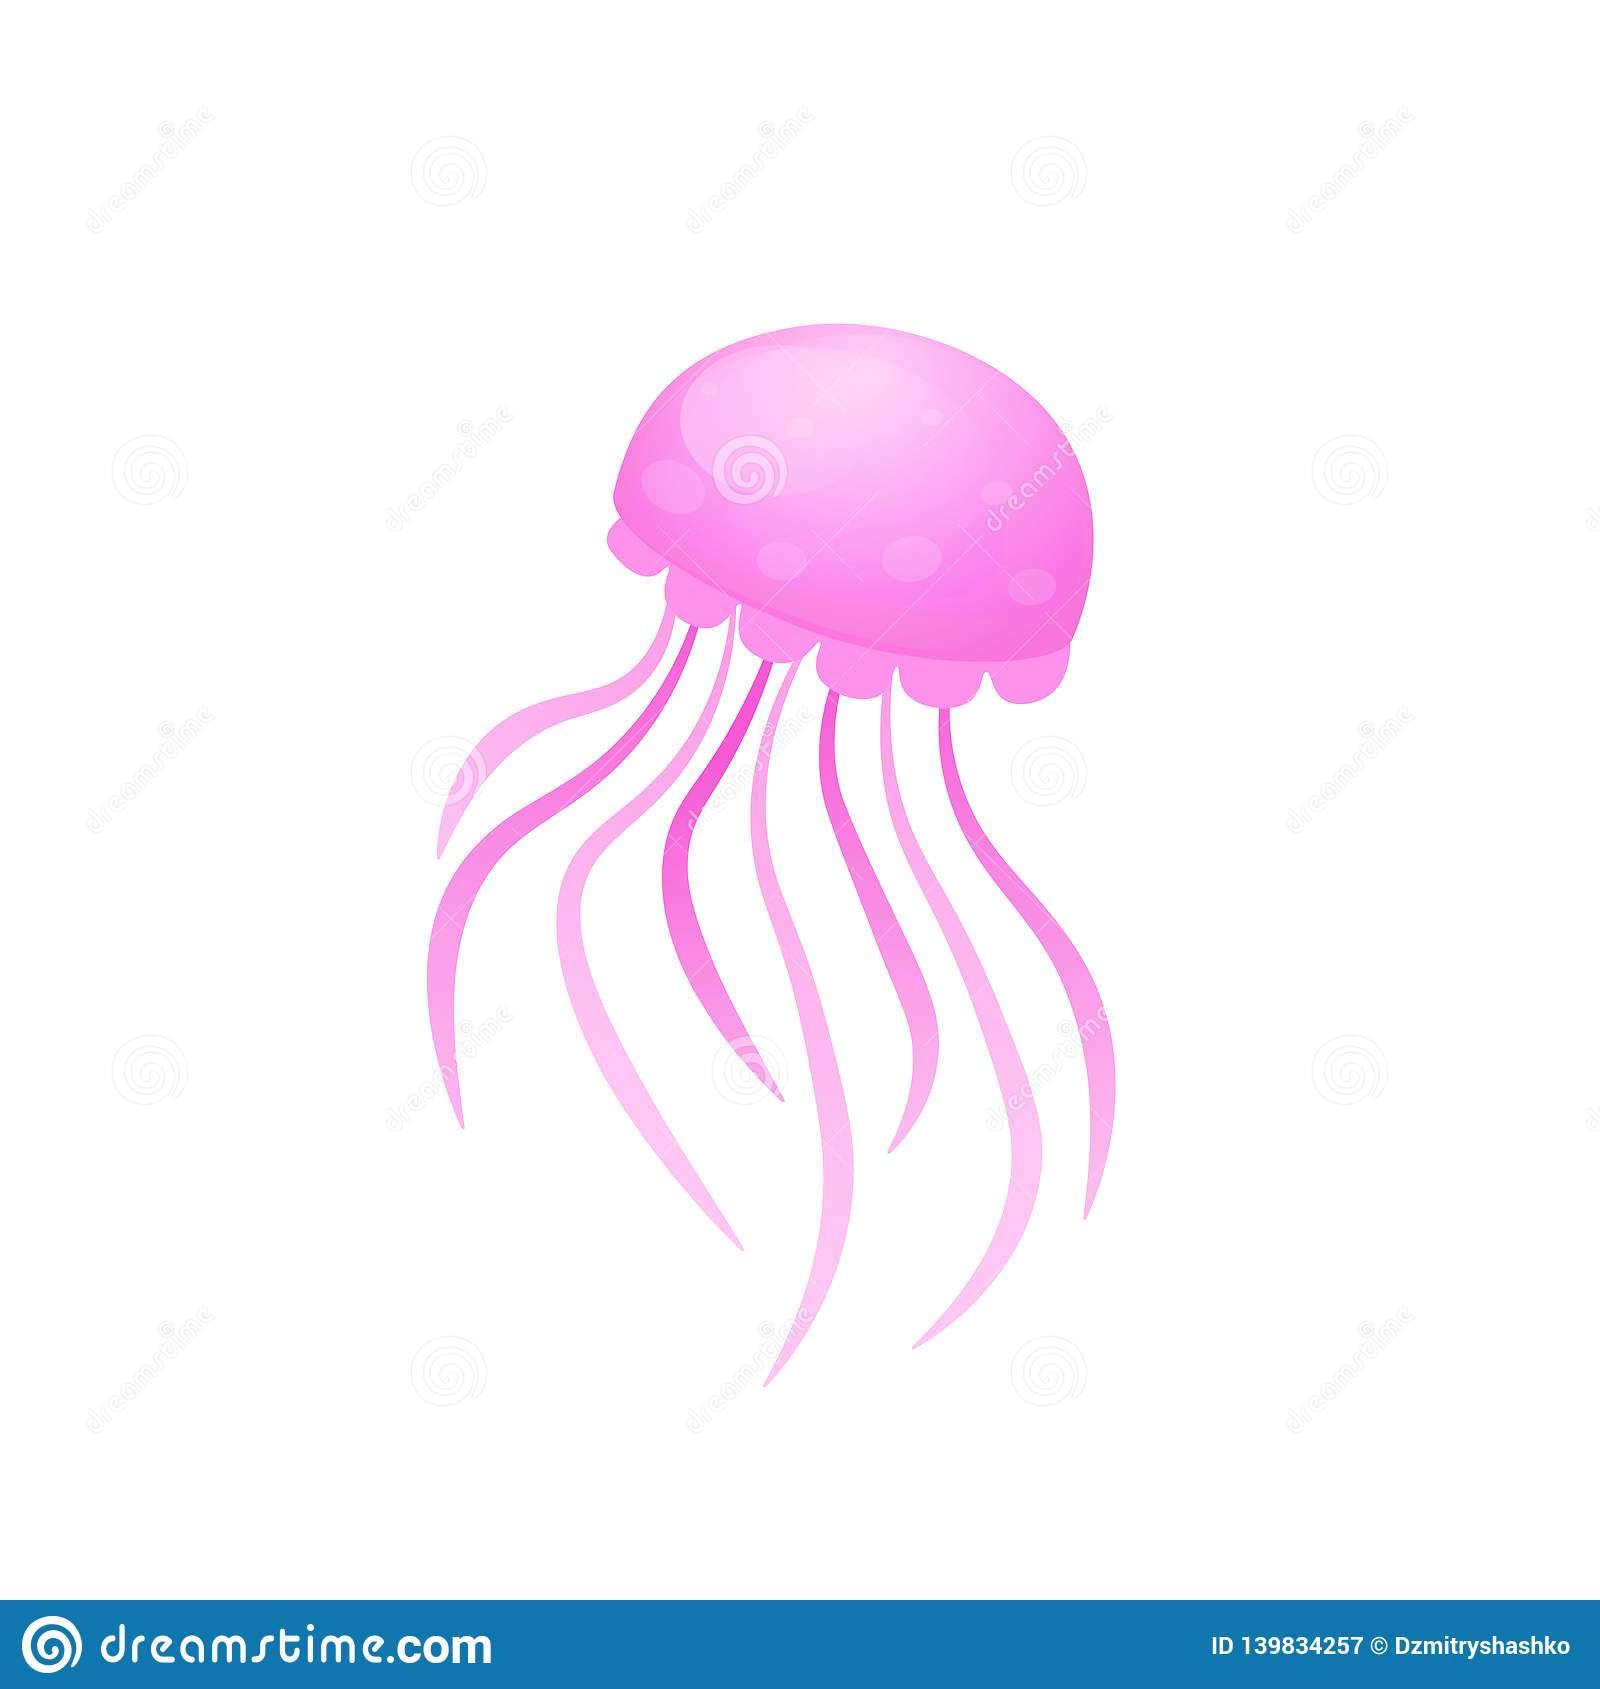 hight resolution of box jellyfish icon clipart image isolated on white background